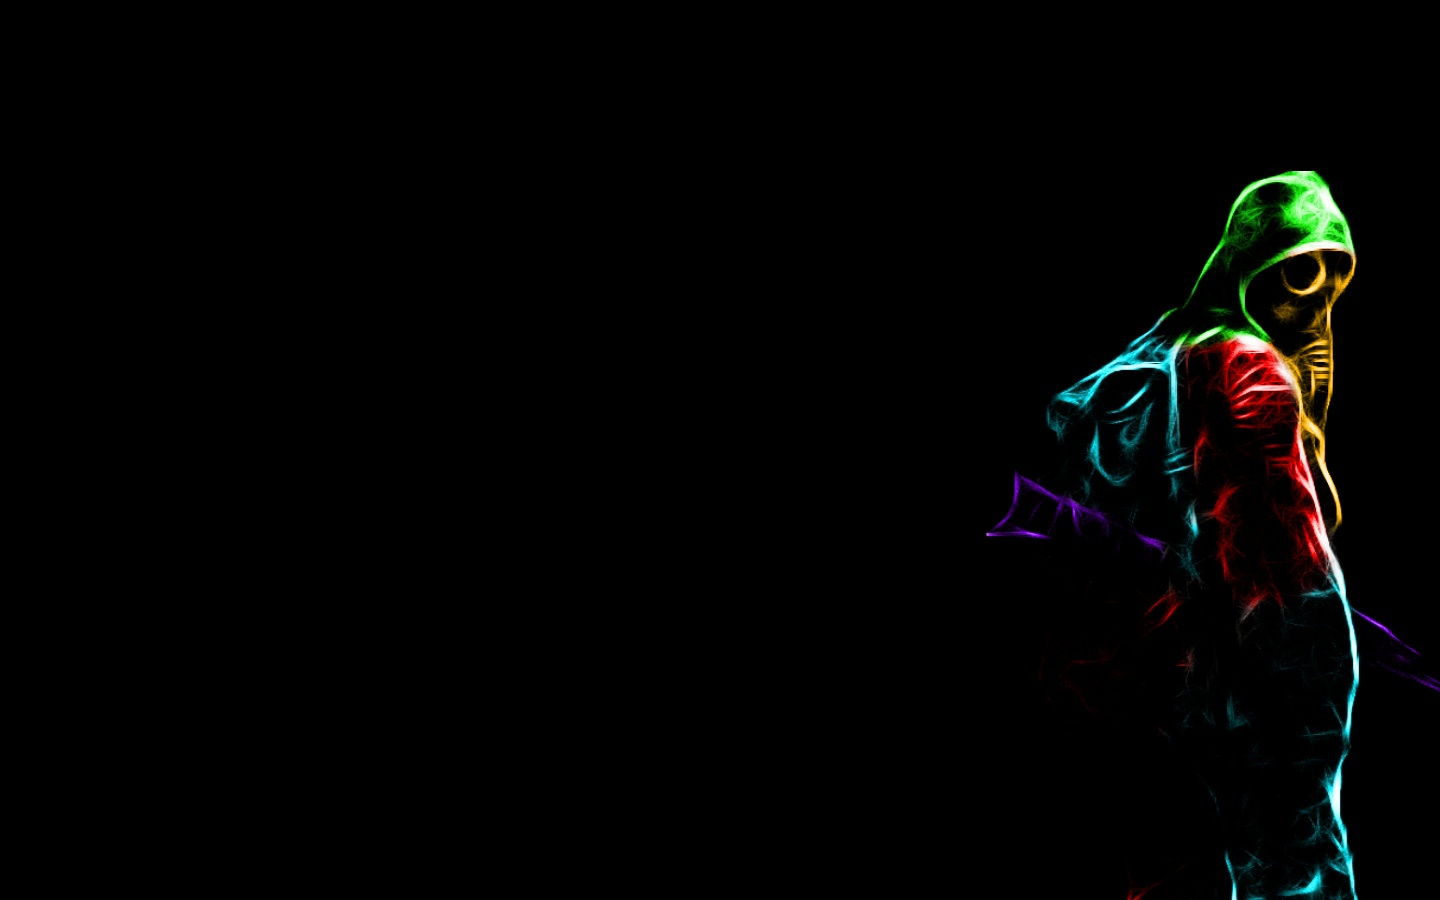 Free Download Gas Mask Wallpaper And Background Image